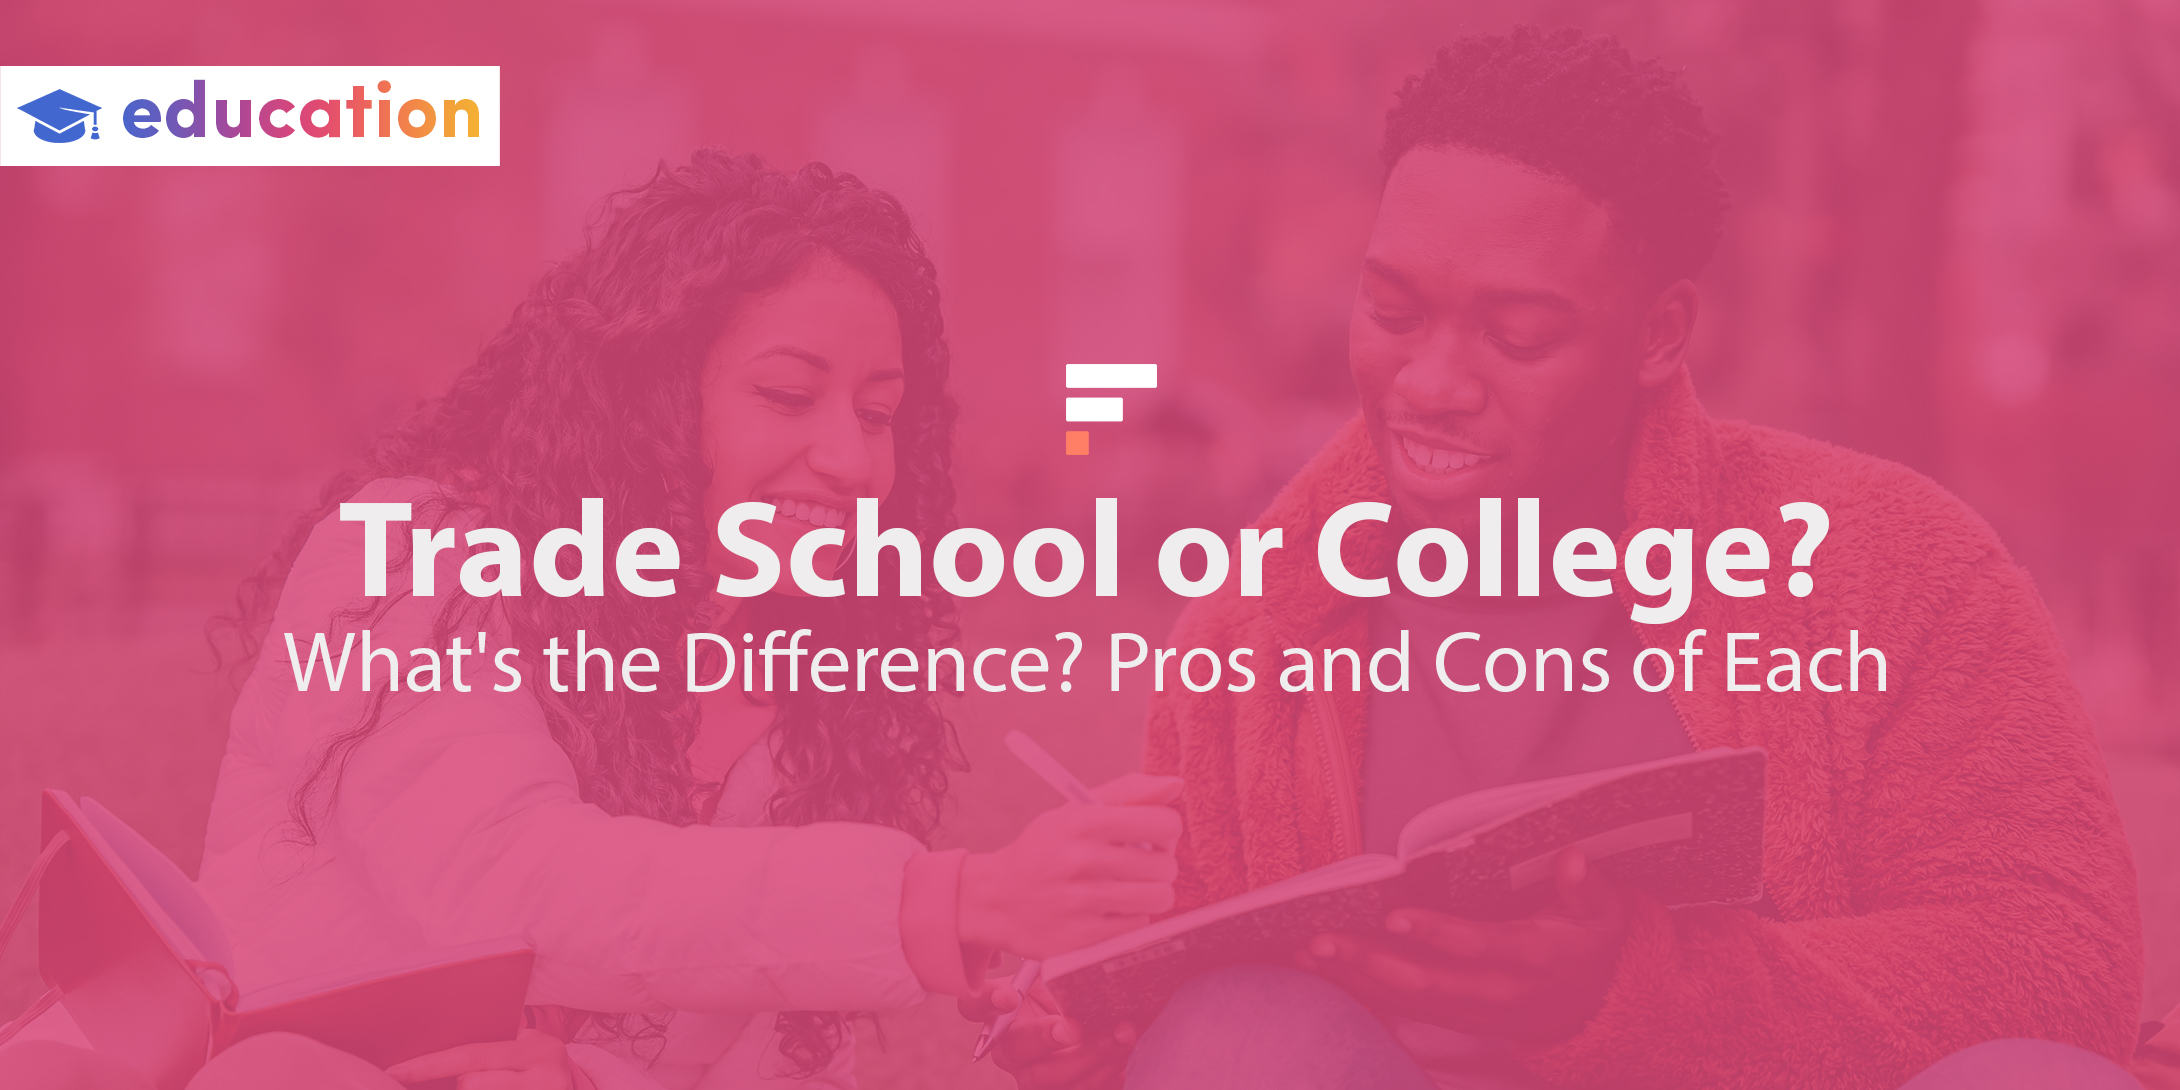 Trade school or college